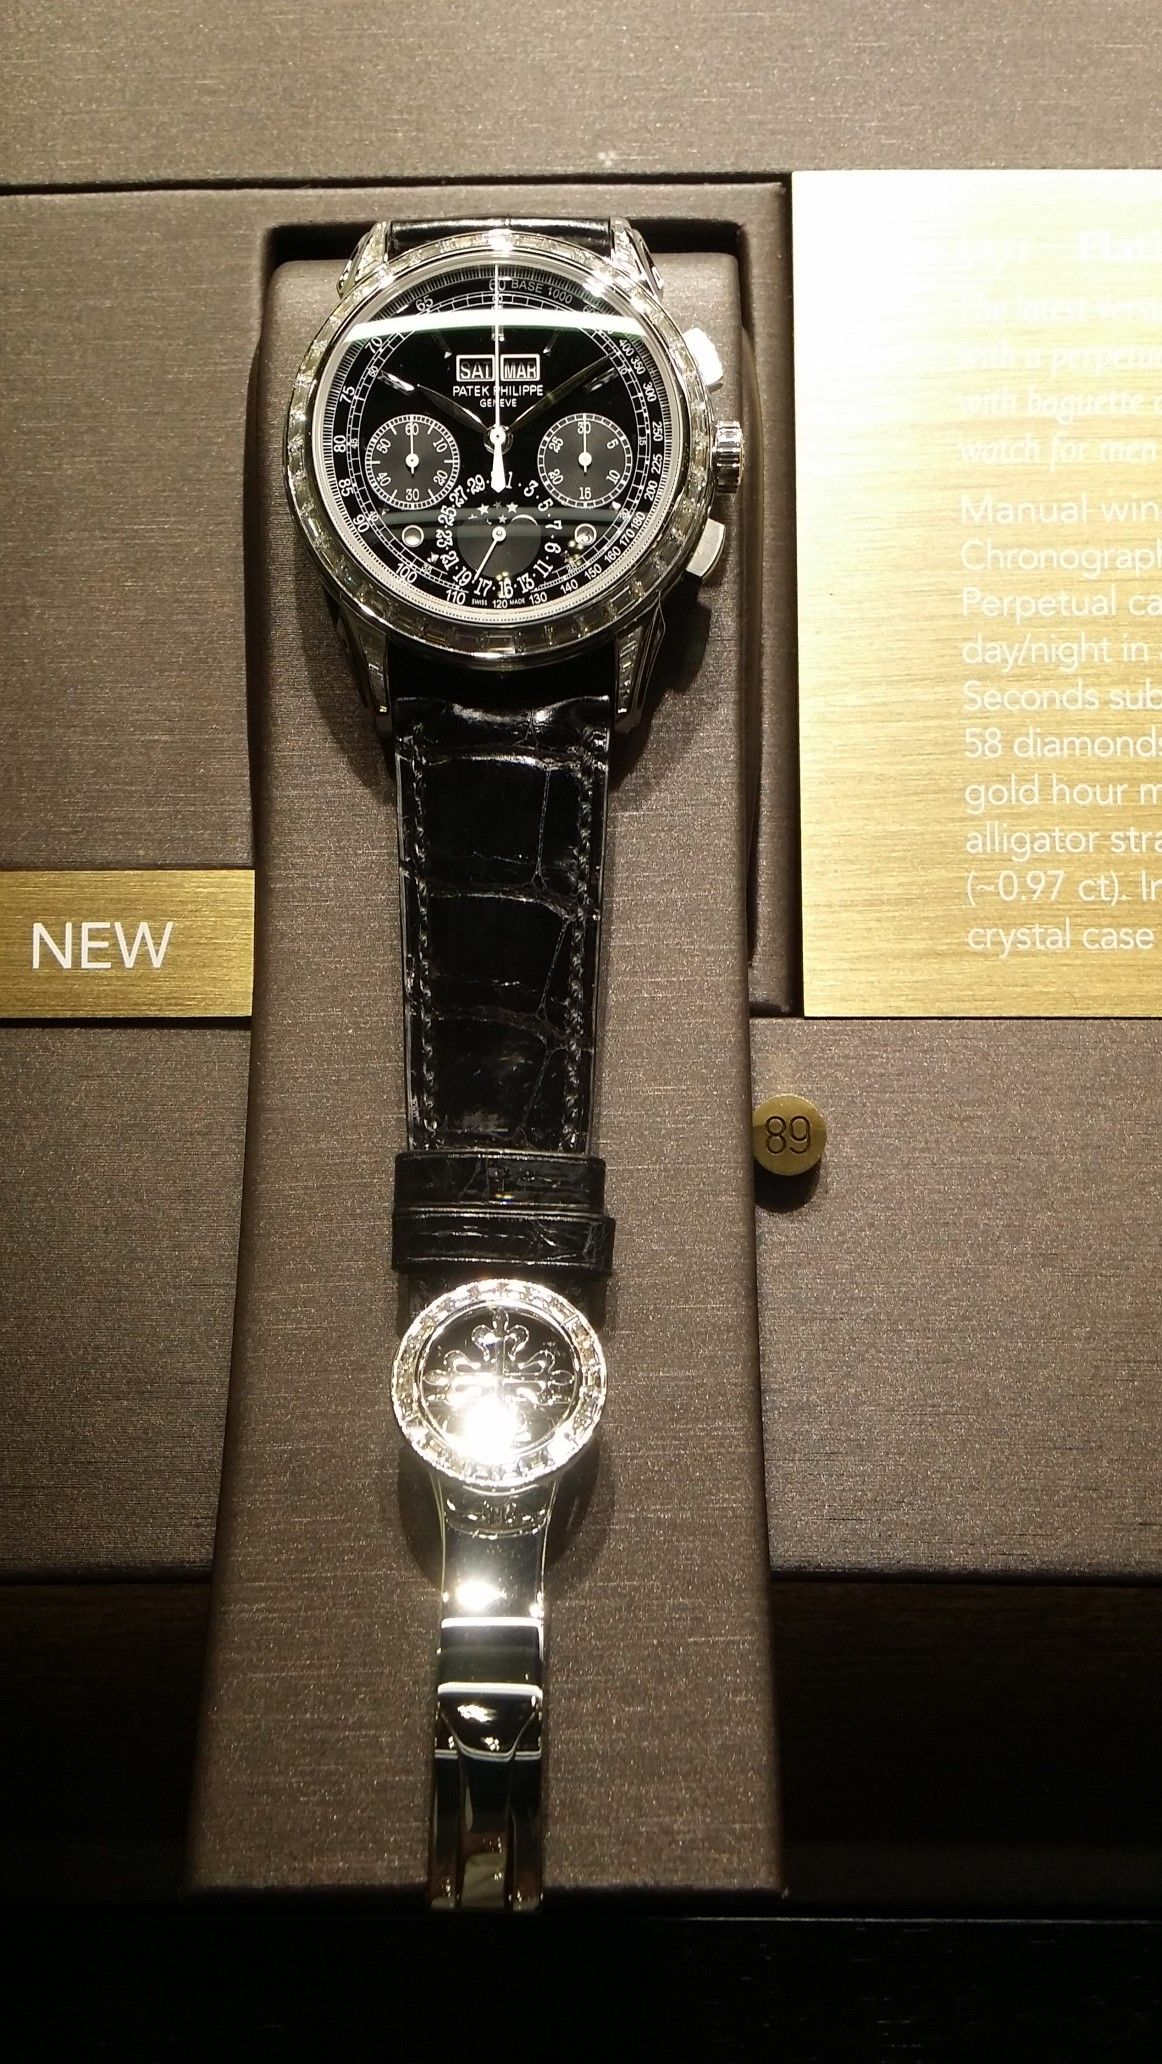 WatchFacts was at Baselworld 2014! Check out this new Patek Philippe 5271